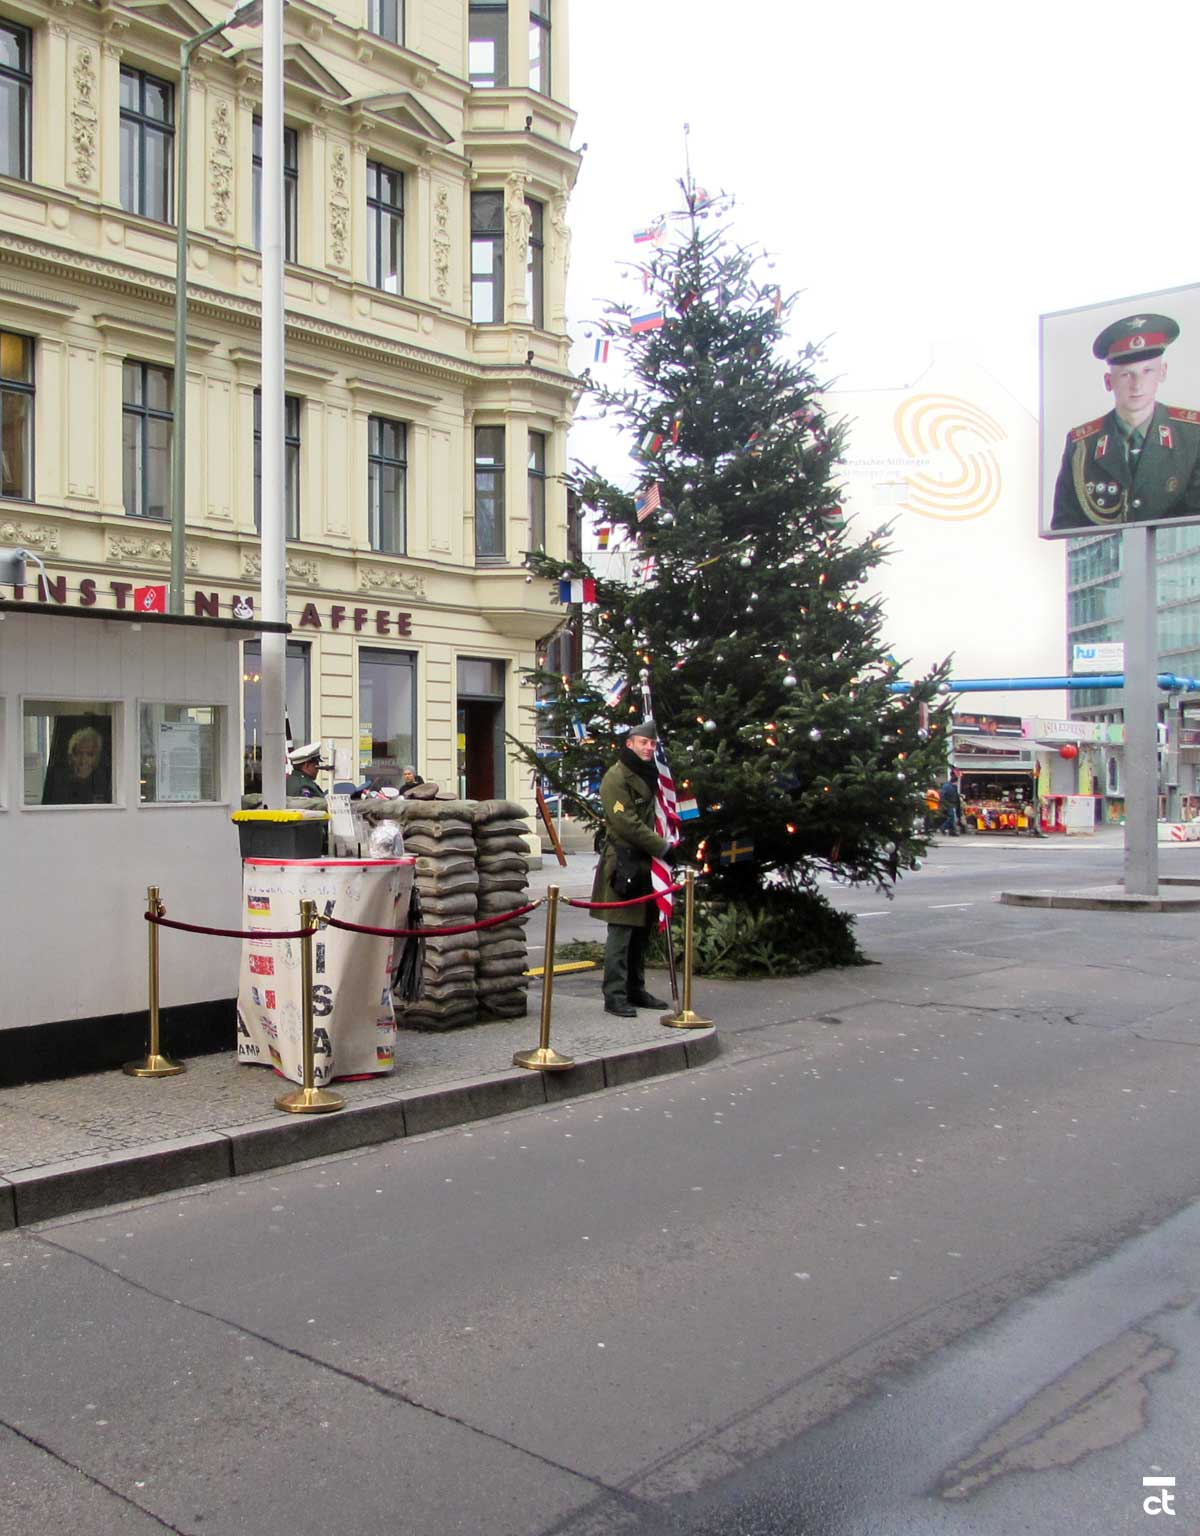 CHECKPOINT CHARLIE - BERLIN TRAVEL GUIDE: 55 Things to Do in Berlin, Germany